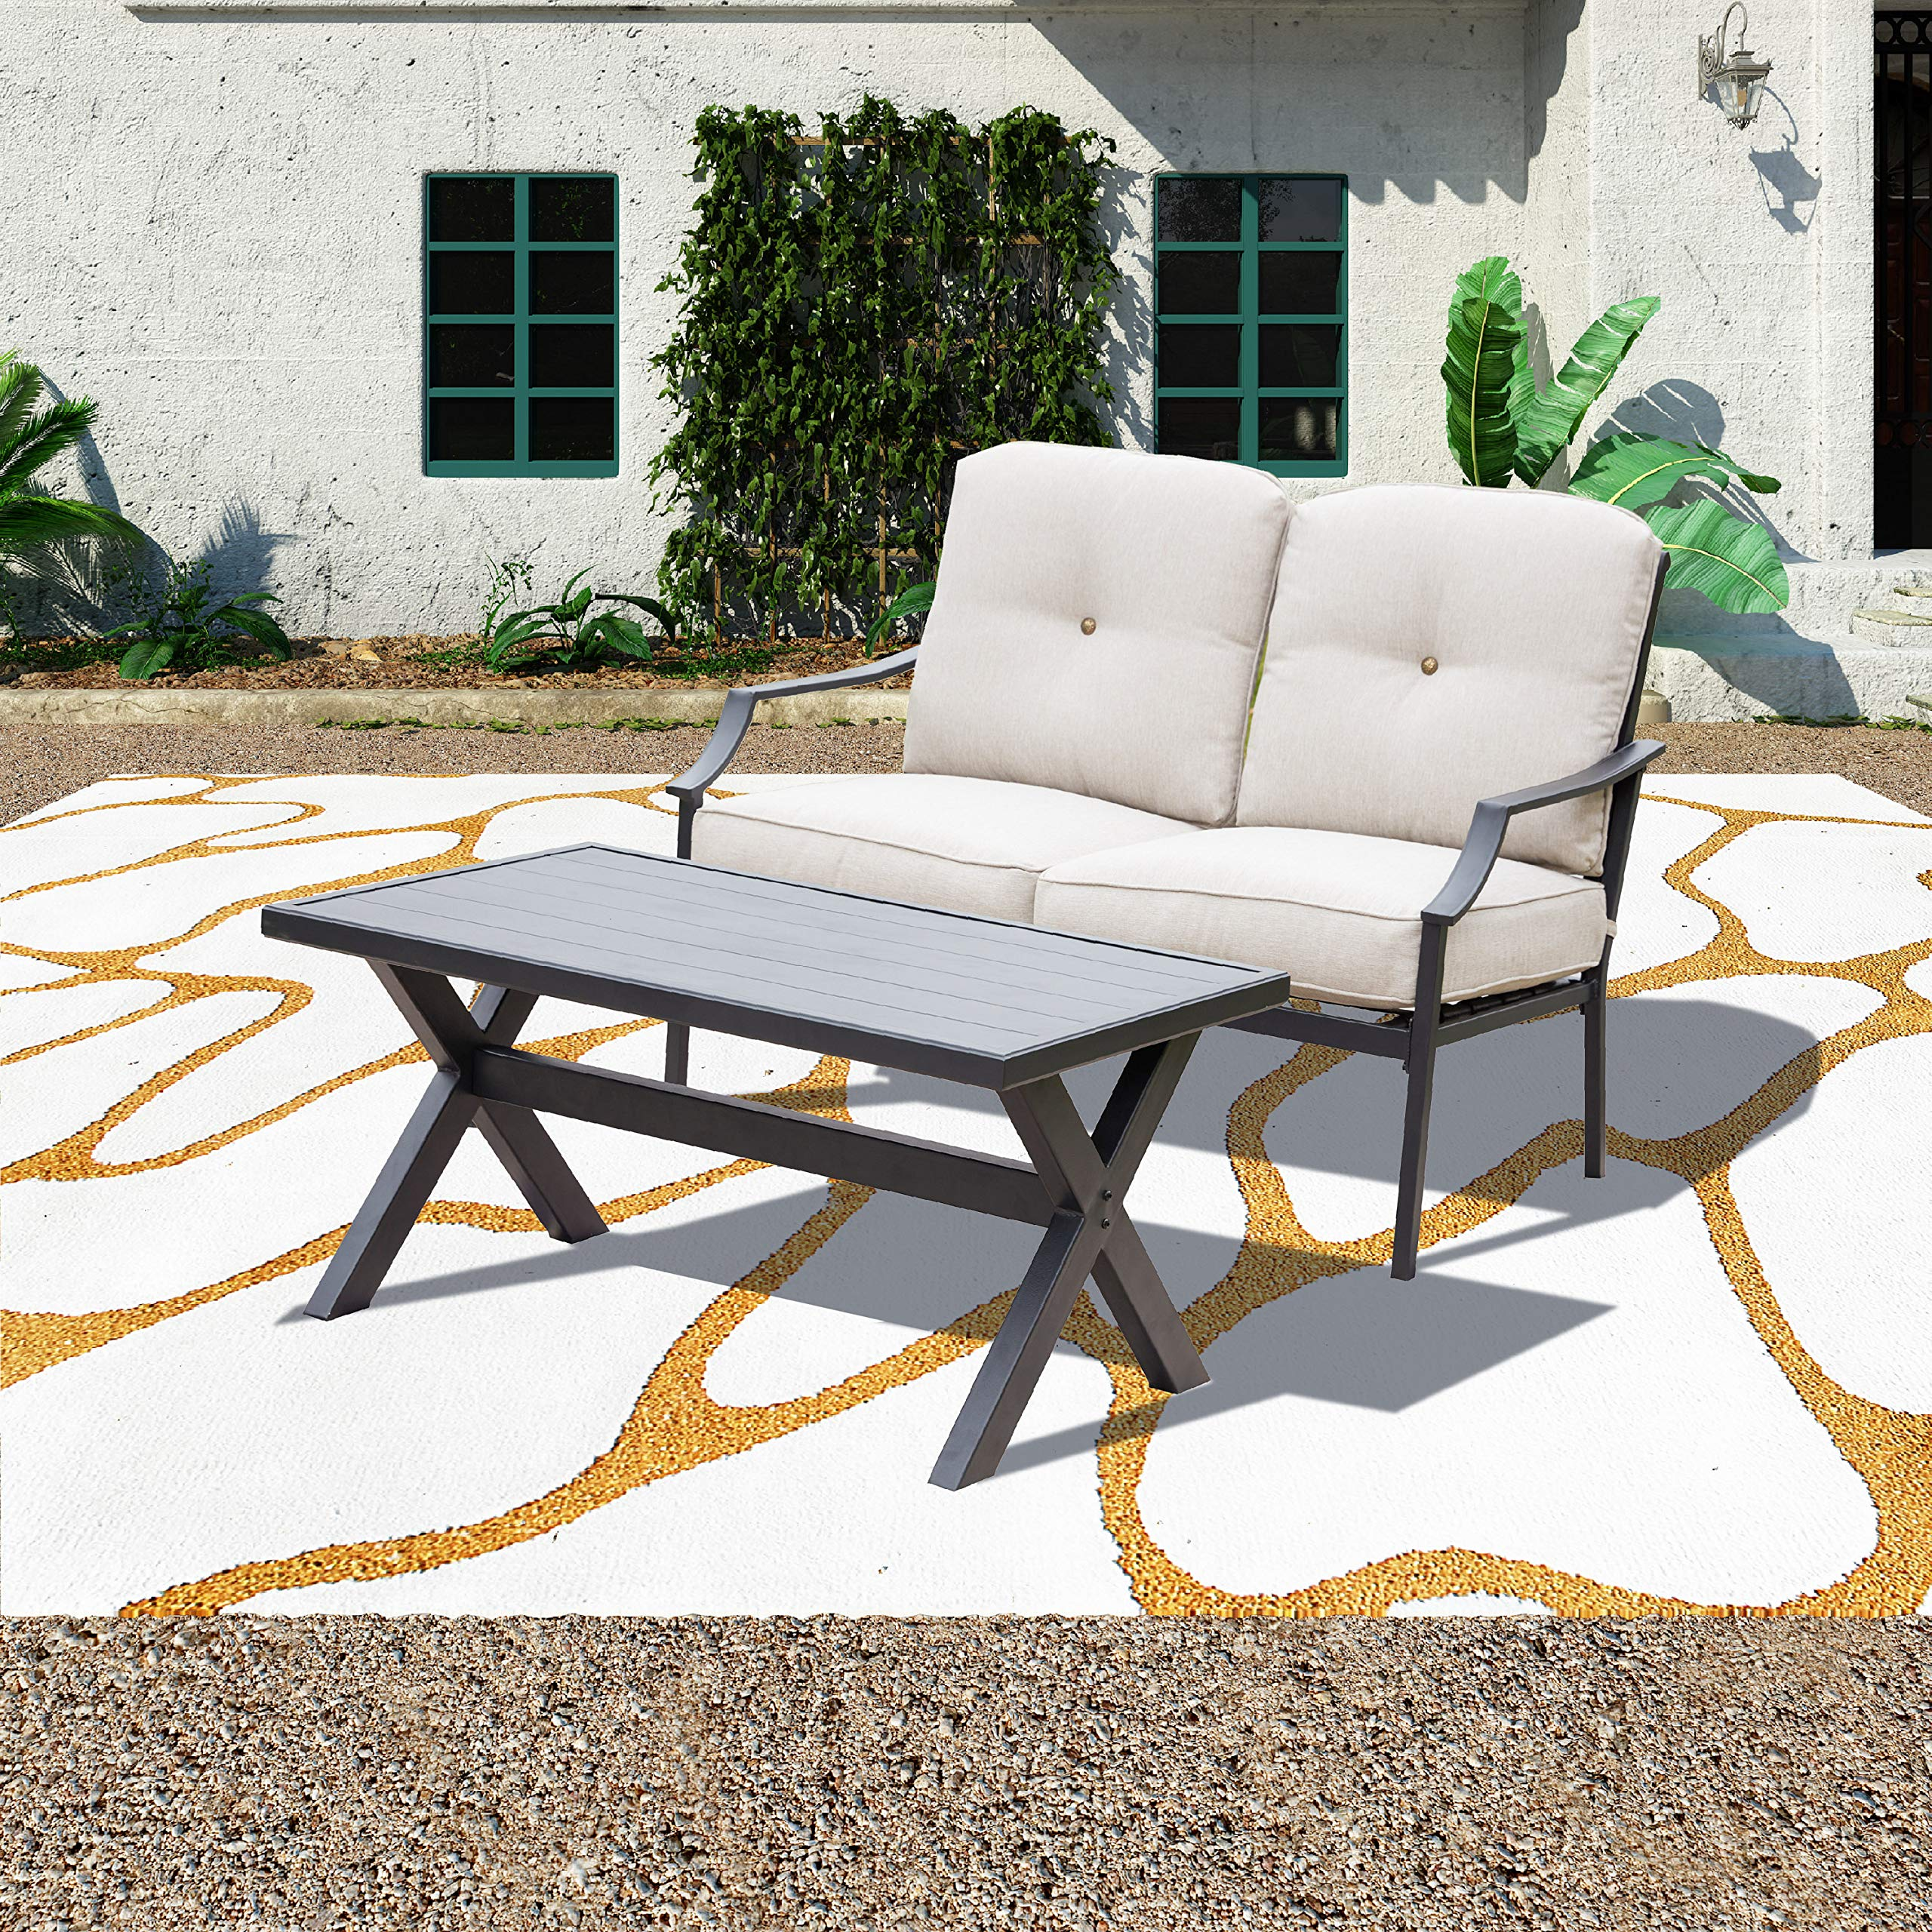 Patio Festival ® Outdoor Loveseat Bench,2PCs Conversation Furniture Set with Cushions,for Garden,Yard,Poolside and Patio (2 PCs, White) by Patio Festival ®